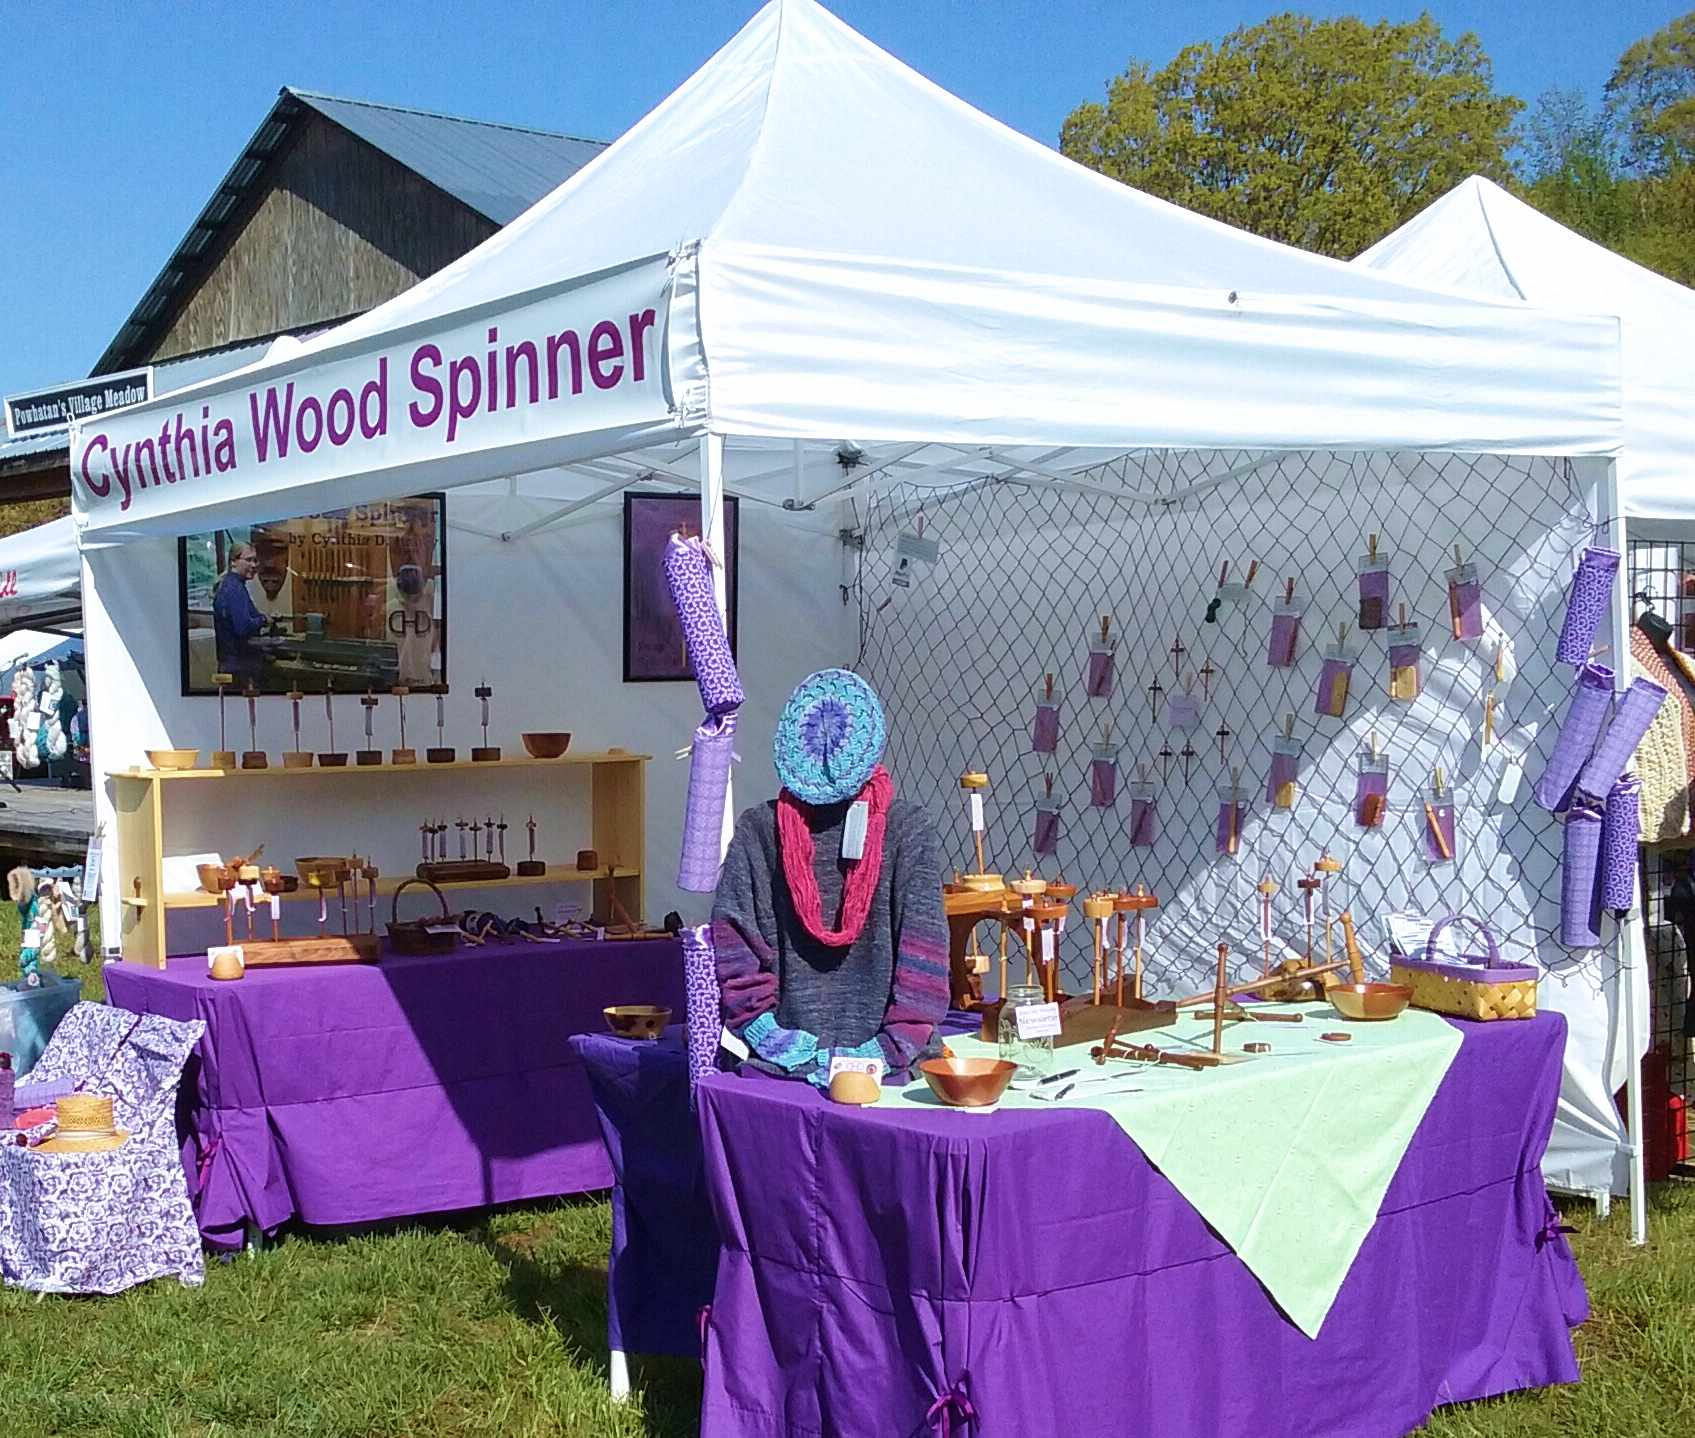 Cynthia's Cynthia Wood Spinner booth at Powhatan's Festival of Fiber 2018